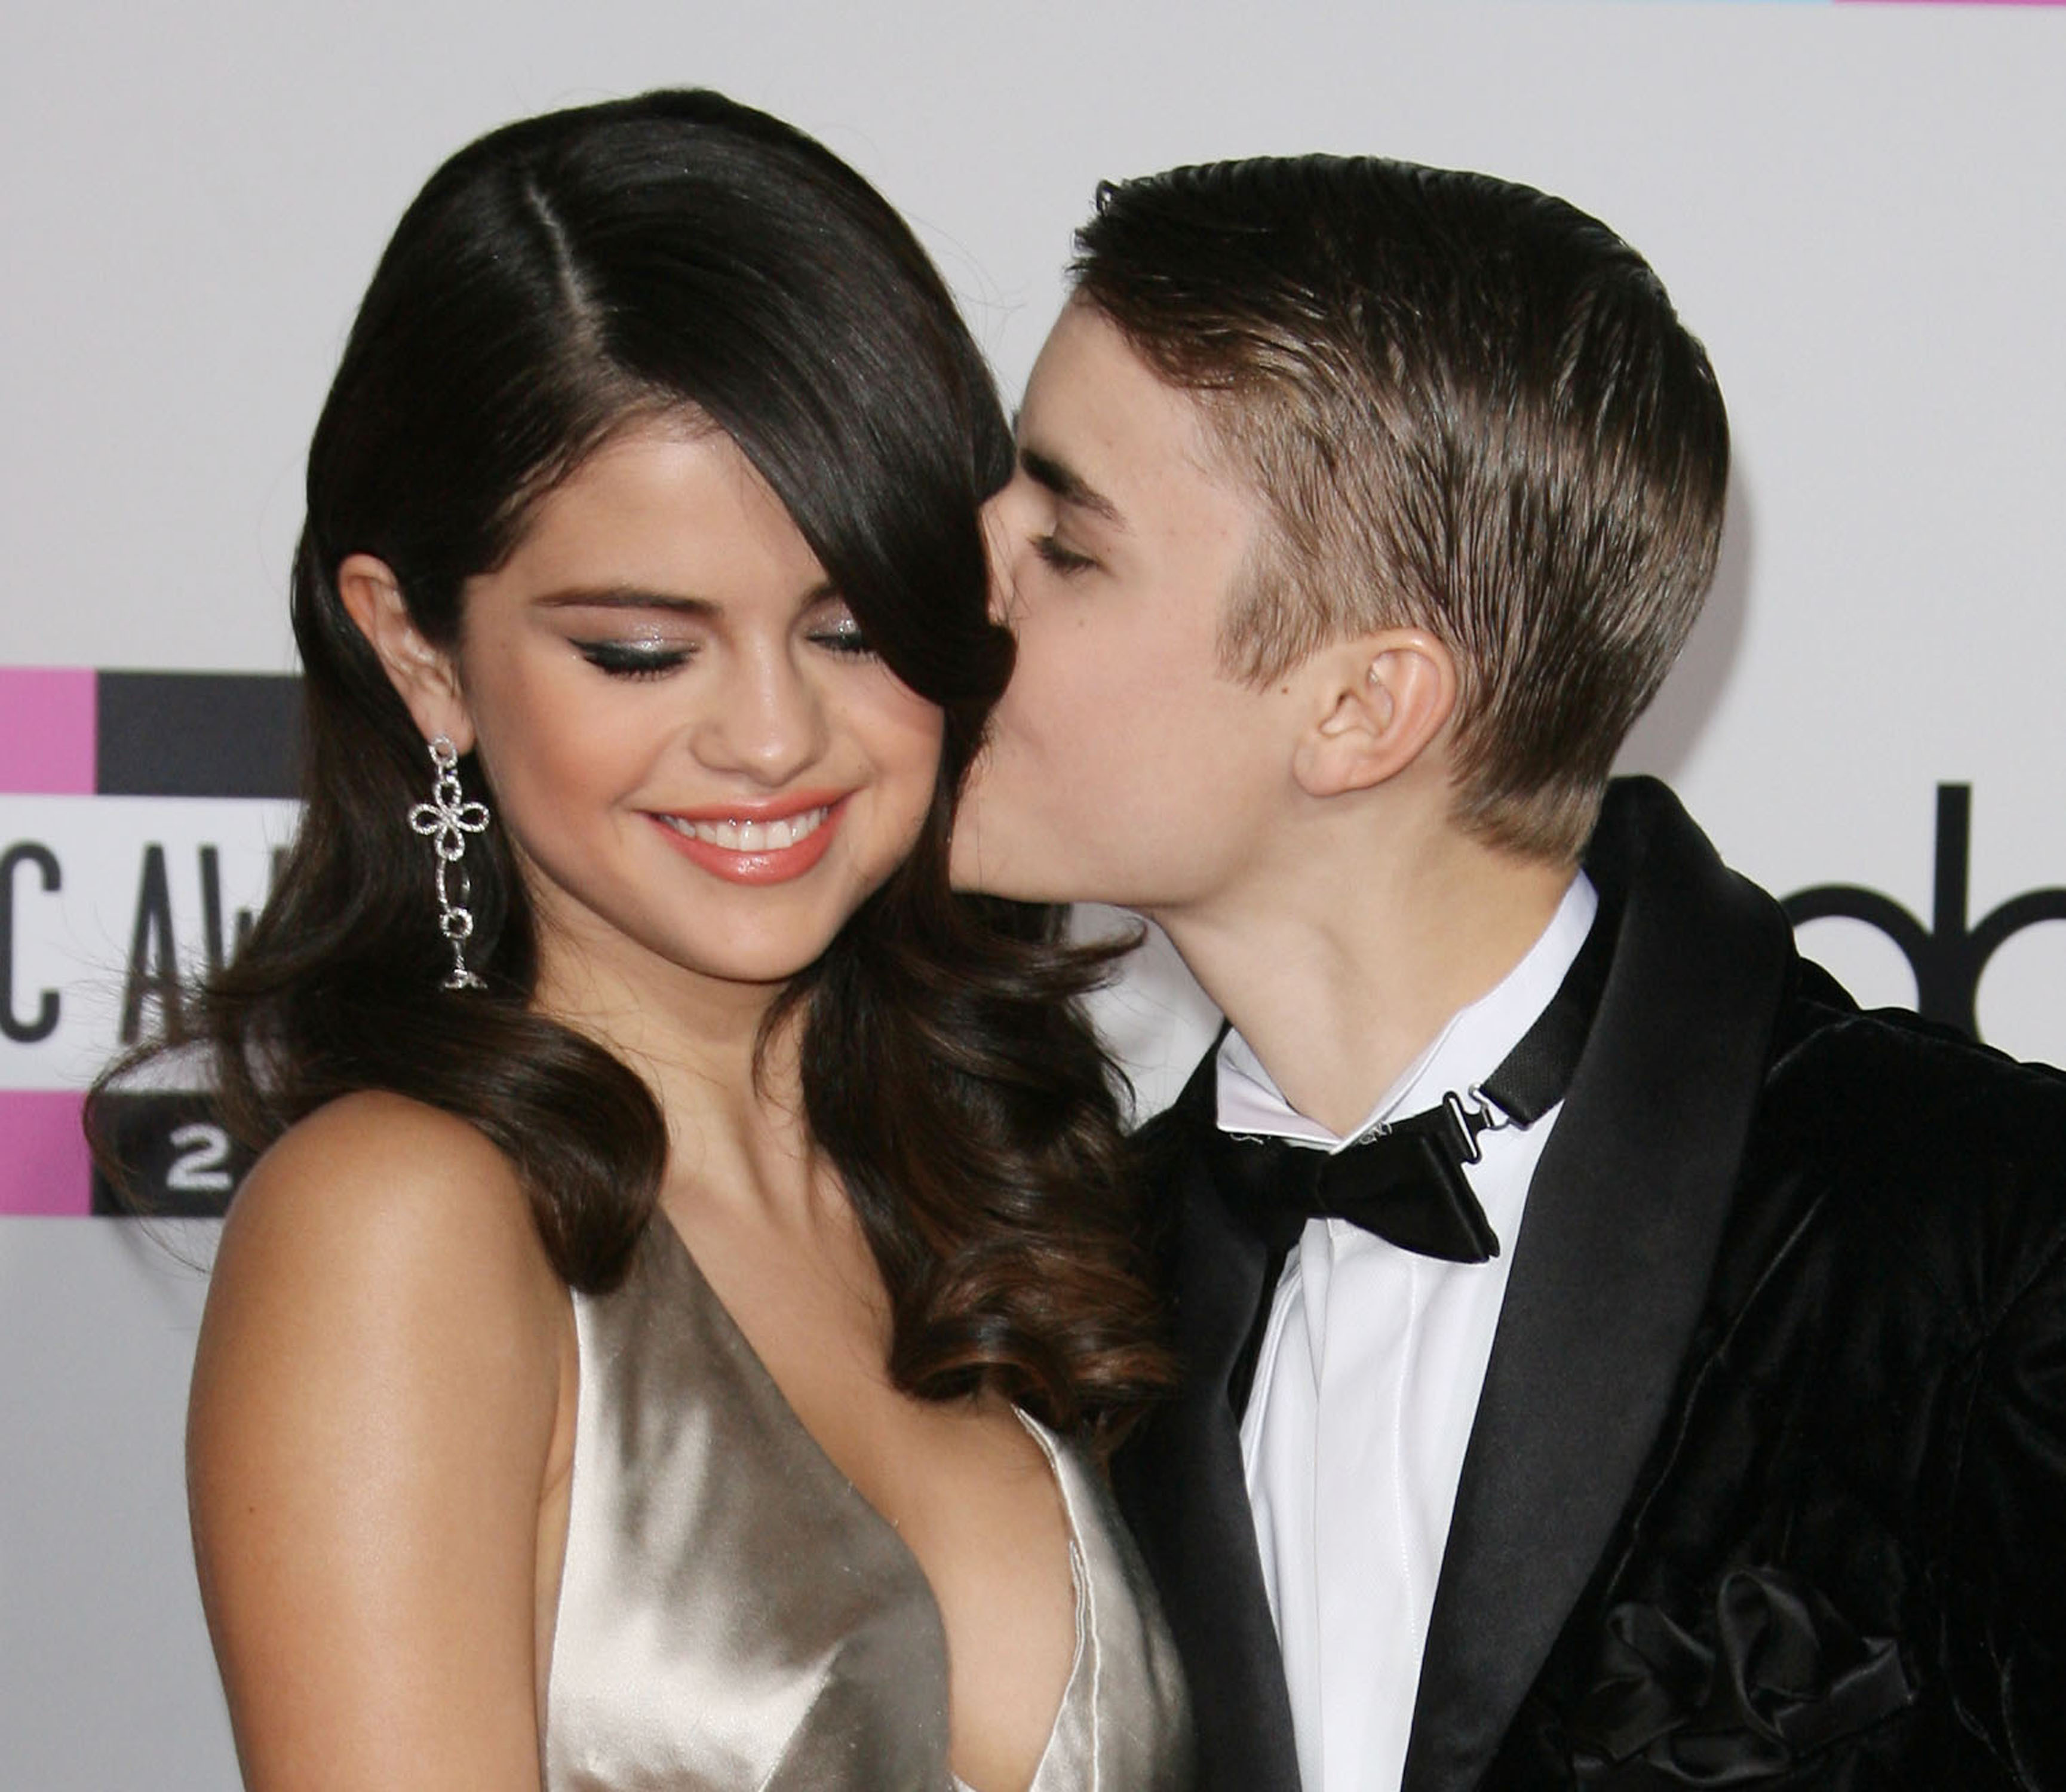 Are Justin Bieber and Selena Gomez back together? Dating?